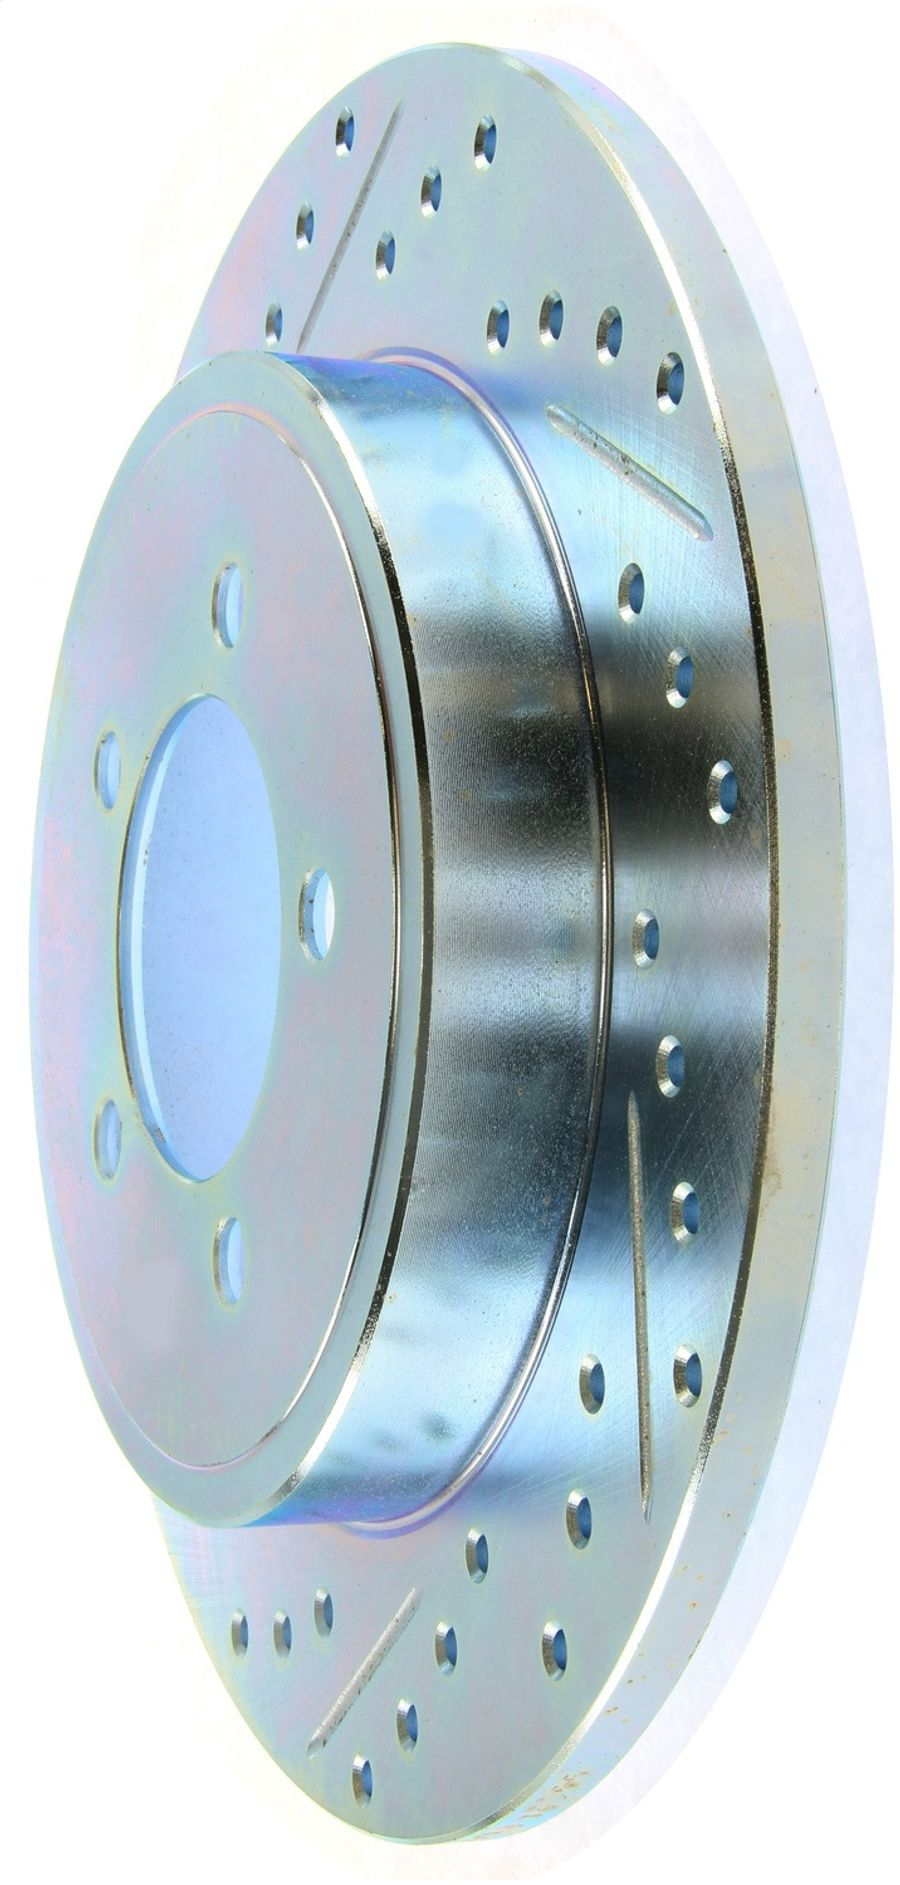 StopTech Disc Brake Rotors Brakes Select Sport Drilled/Slotted Rotor 227.65090R